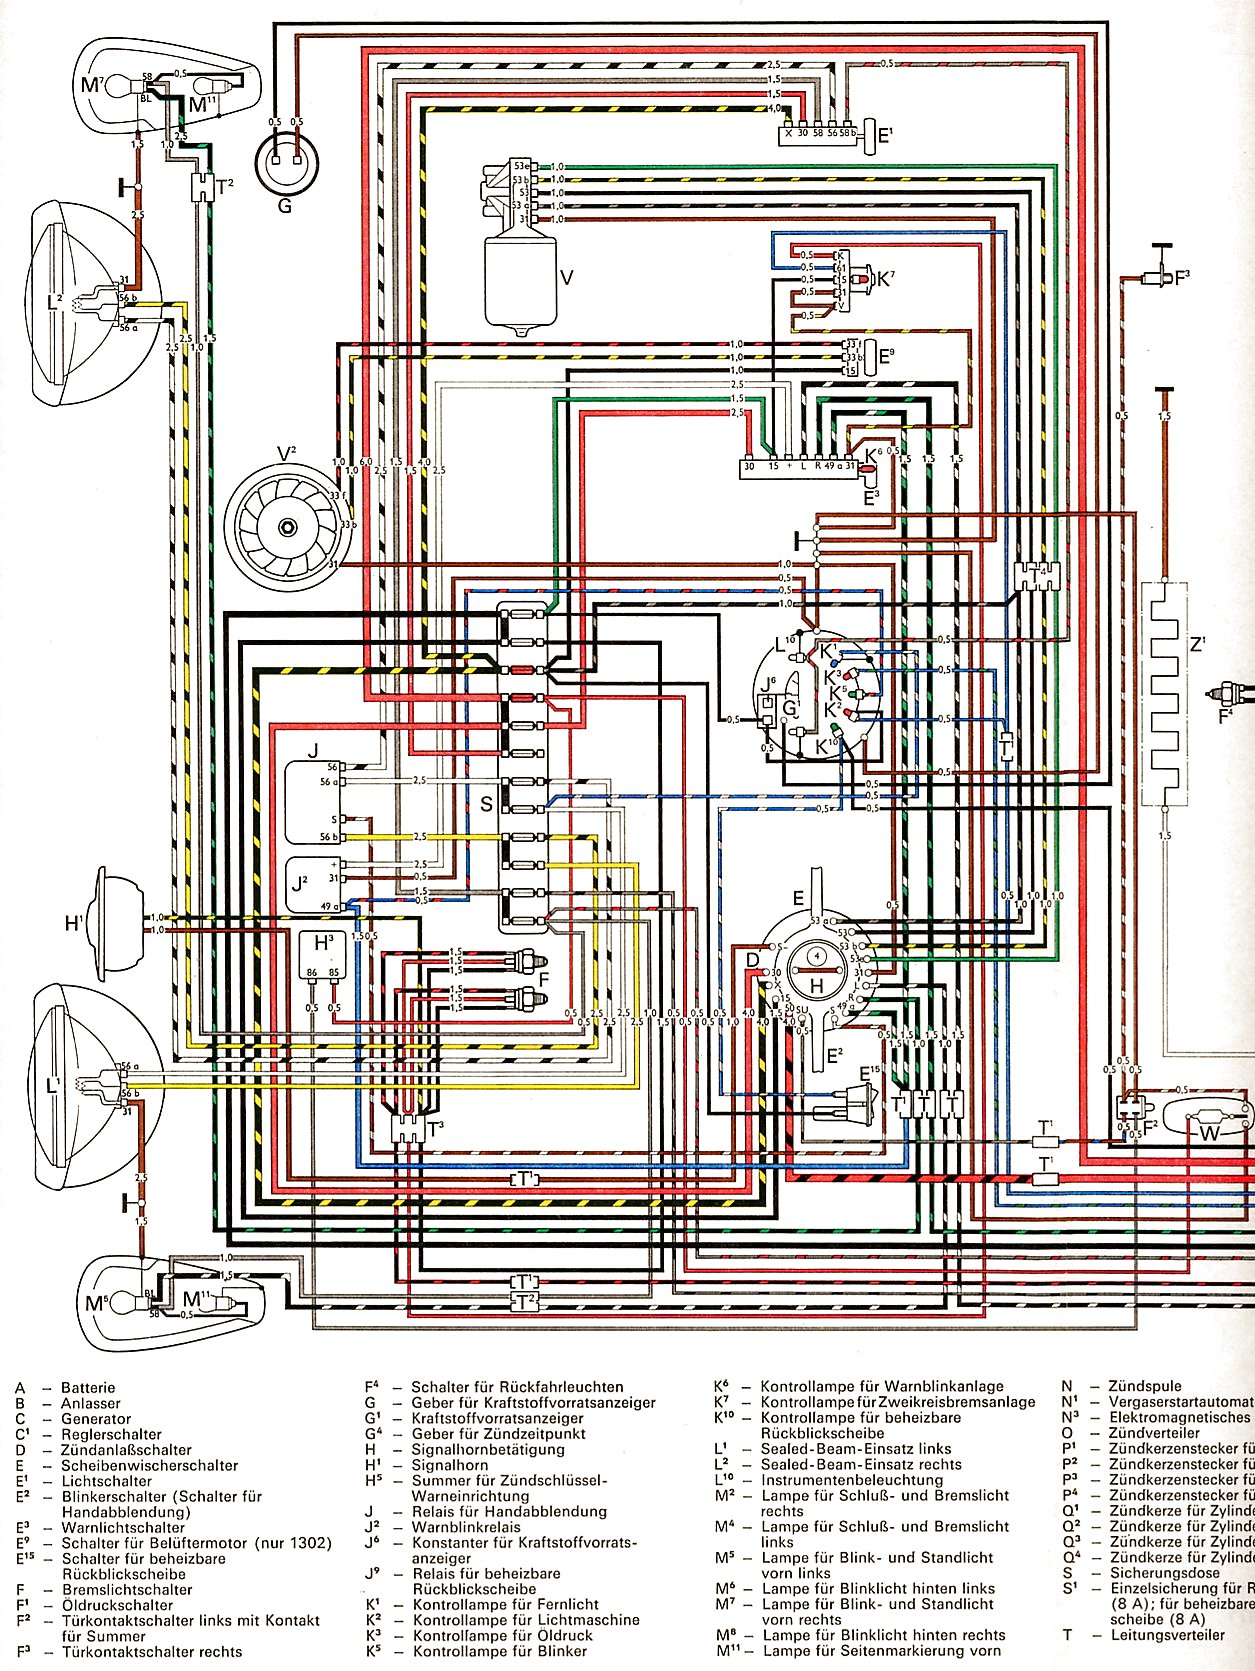 1300_and_1302_USA_from_August_1971 1 vw beetle wiring diagram 1974 1973 vw beetle wiring diagram DIY Lingerie Harness at virtualis.co